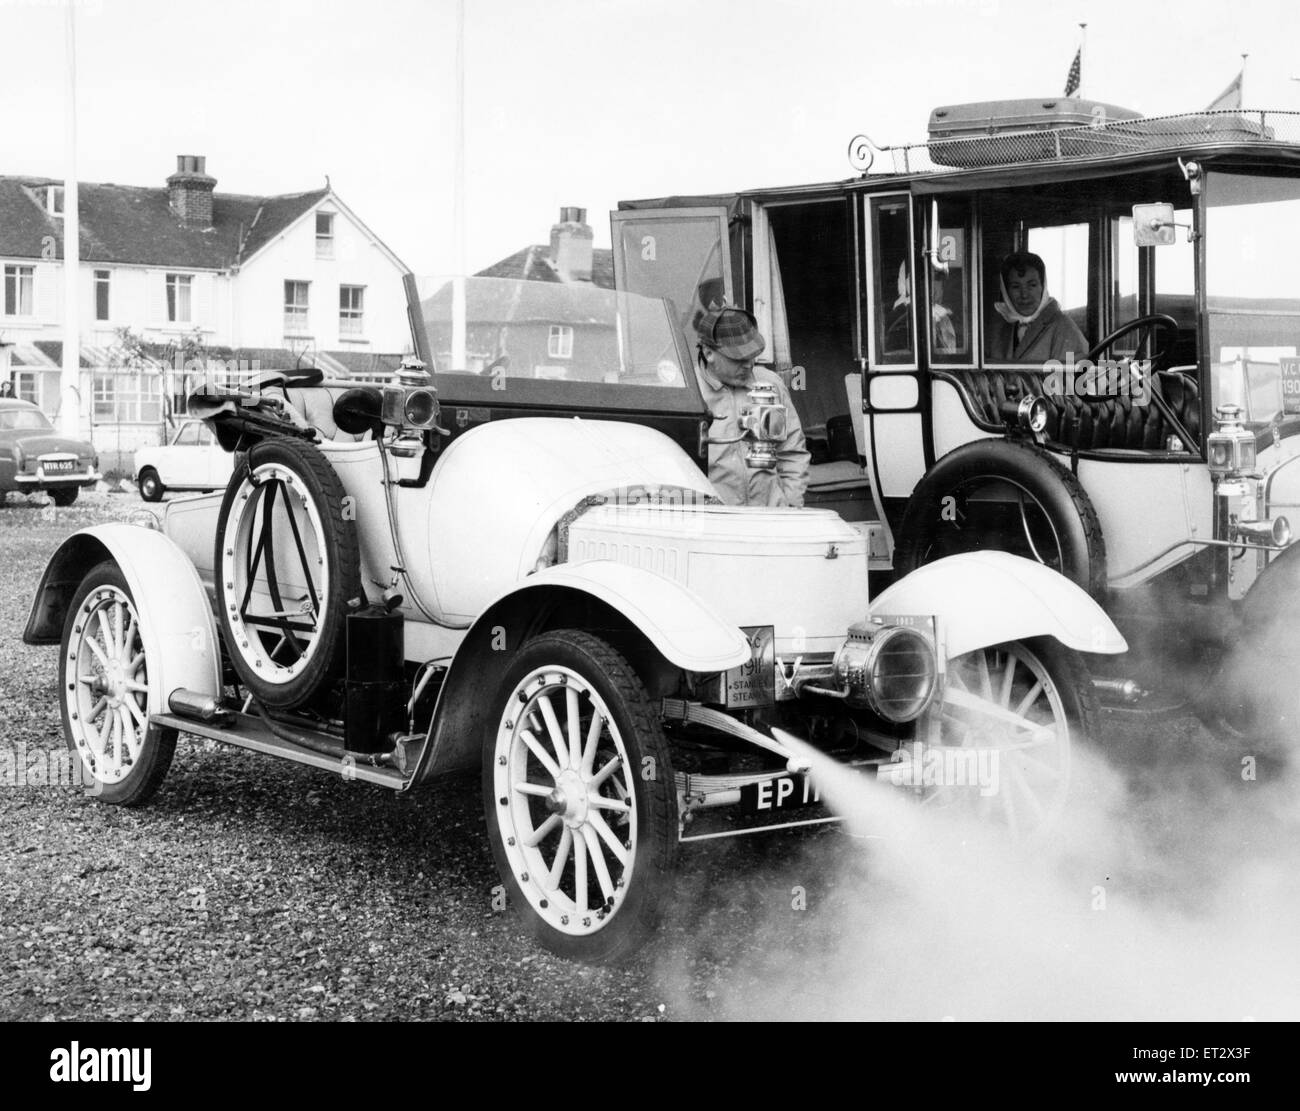 1911 Stanley Steam Car, the only one of its year in the  country, won an award in the 4th International Rally of - Stock Image